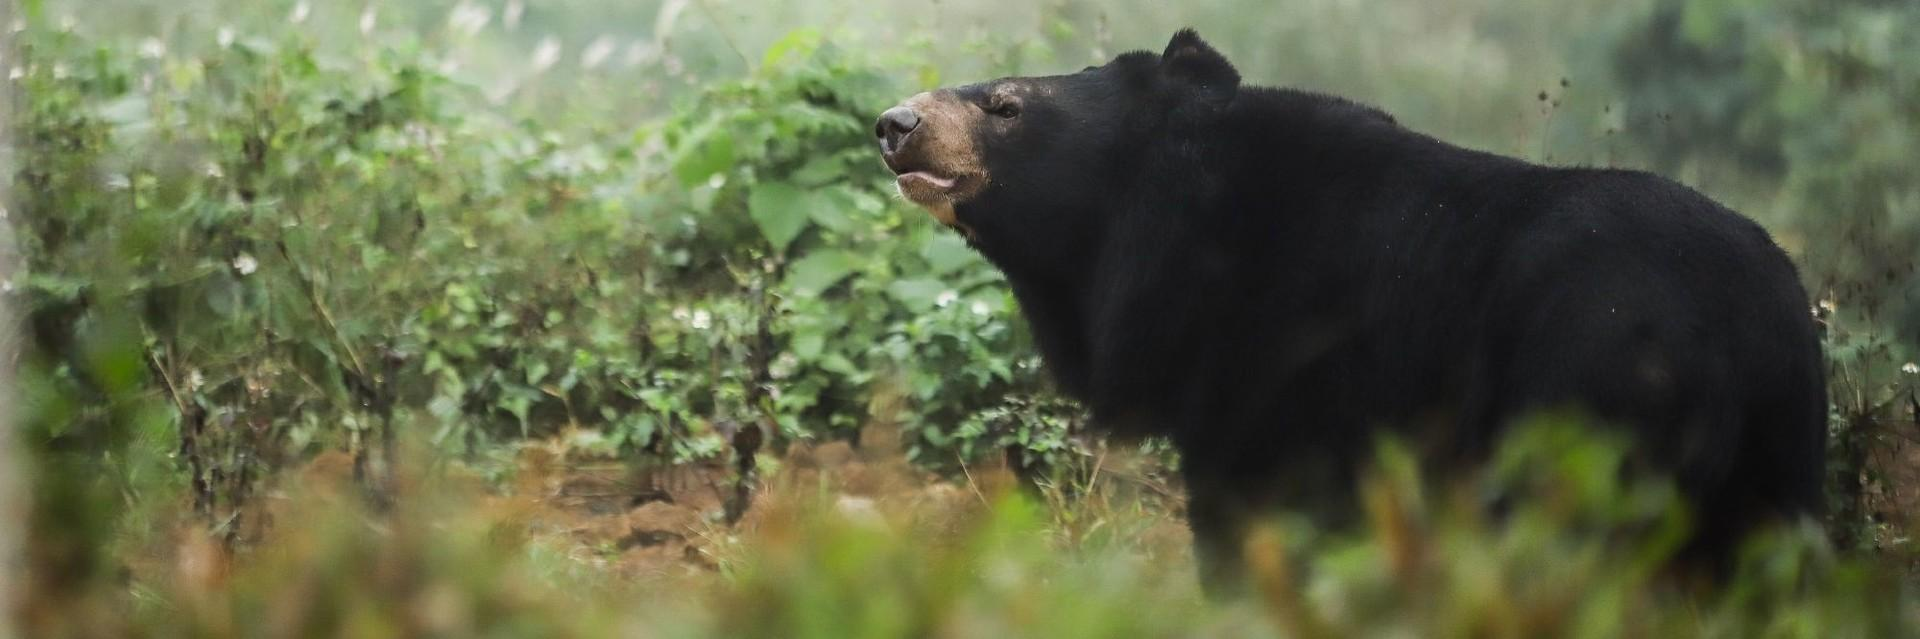 Asiatic Black Bears in Ninh Binh